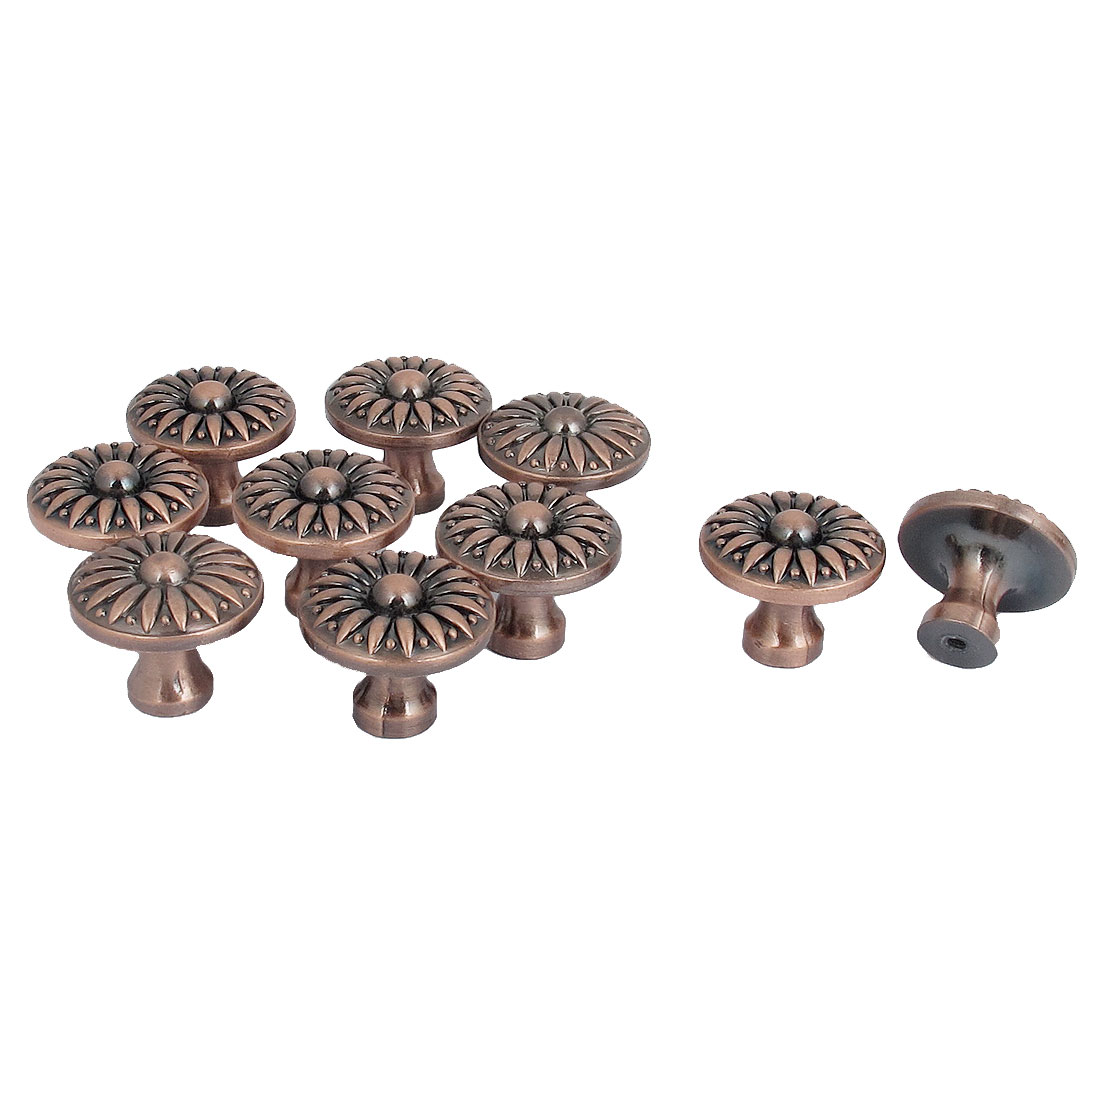 Retro Style Furniture Cabinet Drawer Flower Design Pull Handle Knob Copper Tone 10pcs